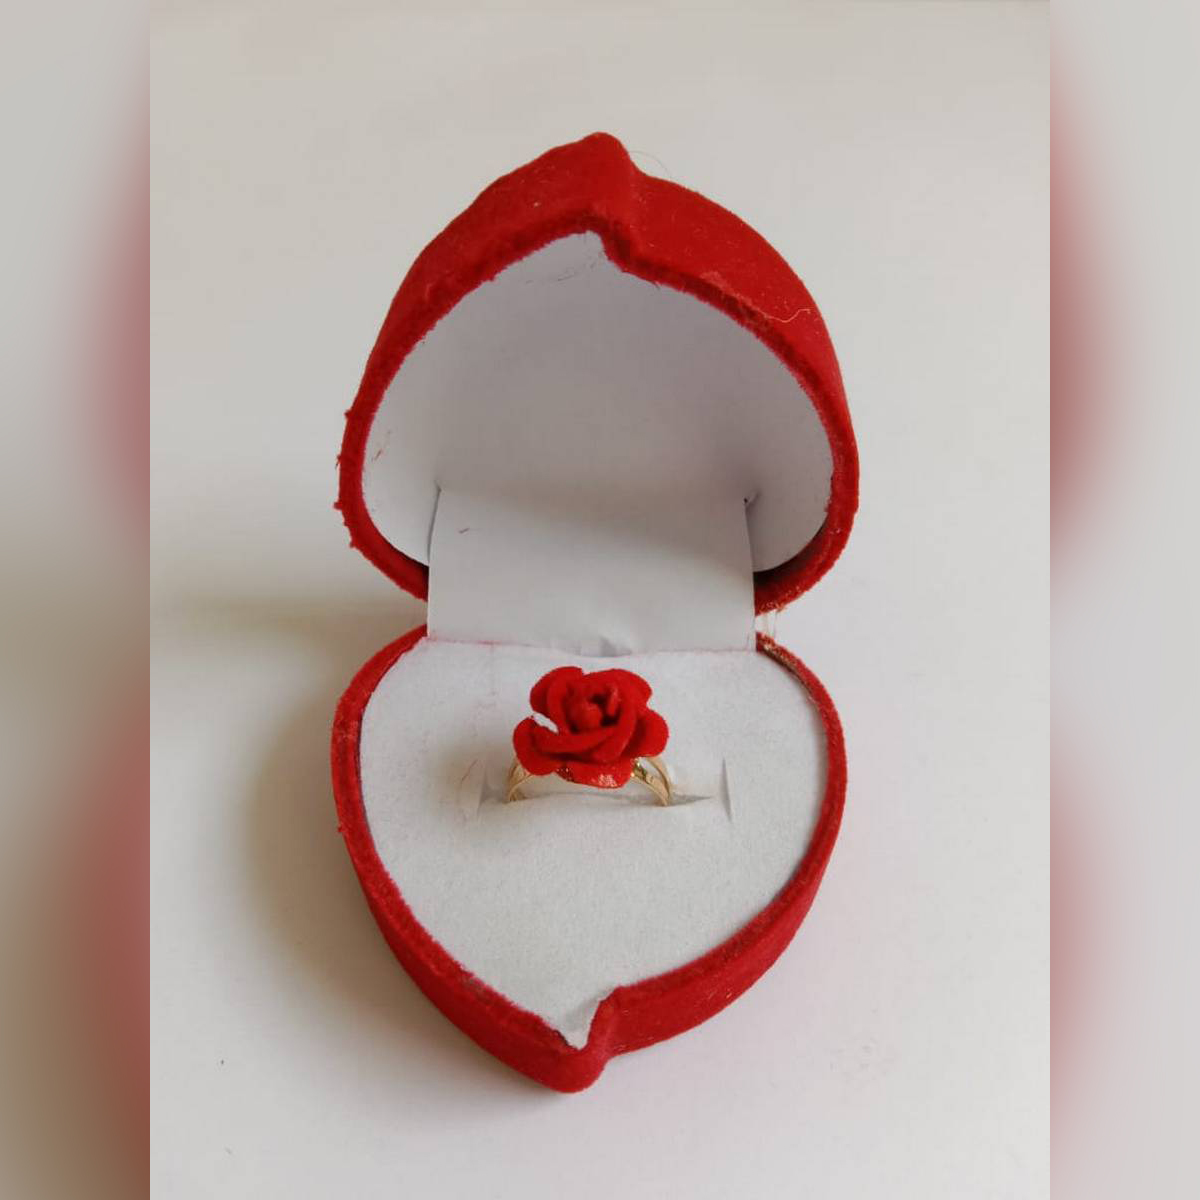 Rose Ring With Heart Style Box For Girls, Adjustable Size, Latest Design, Suitable for Girls and Women's as an EID Gift / Valentine Gift / Anniversary etc